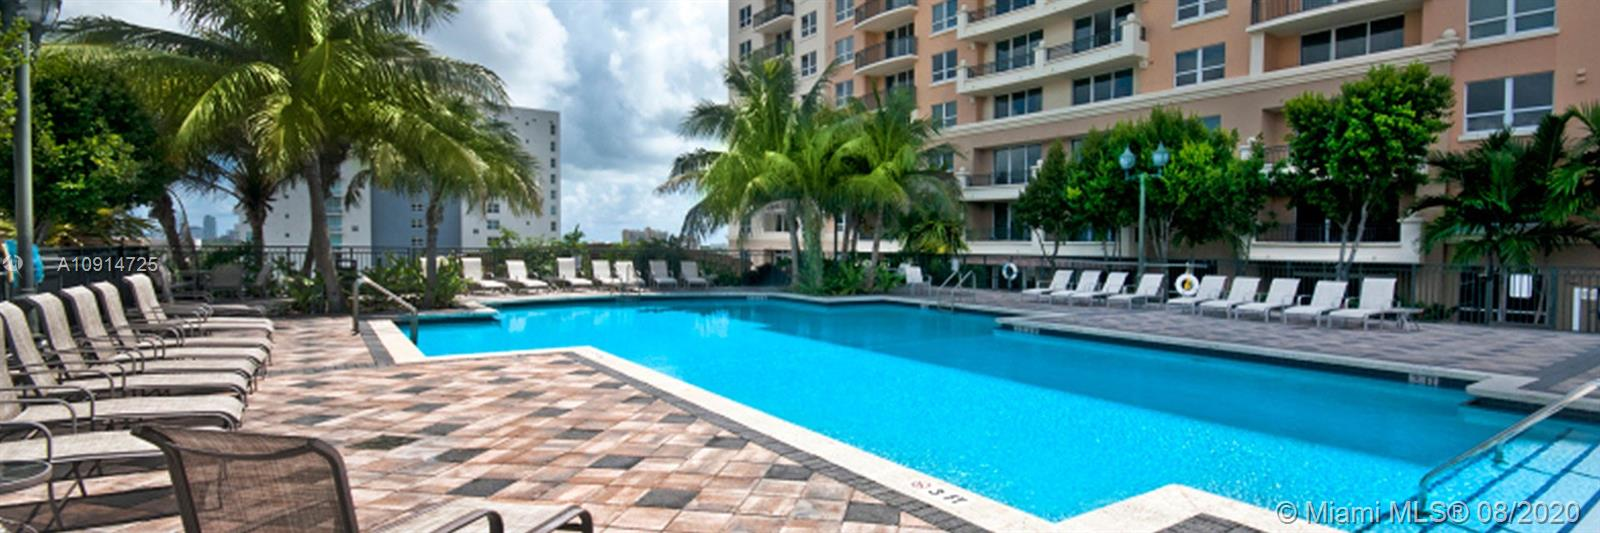 3232 Coral way-401 miami-fl-33145-a10914725-Pic26